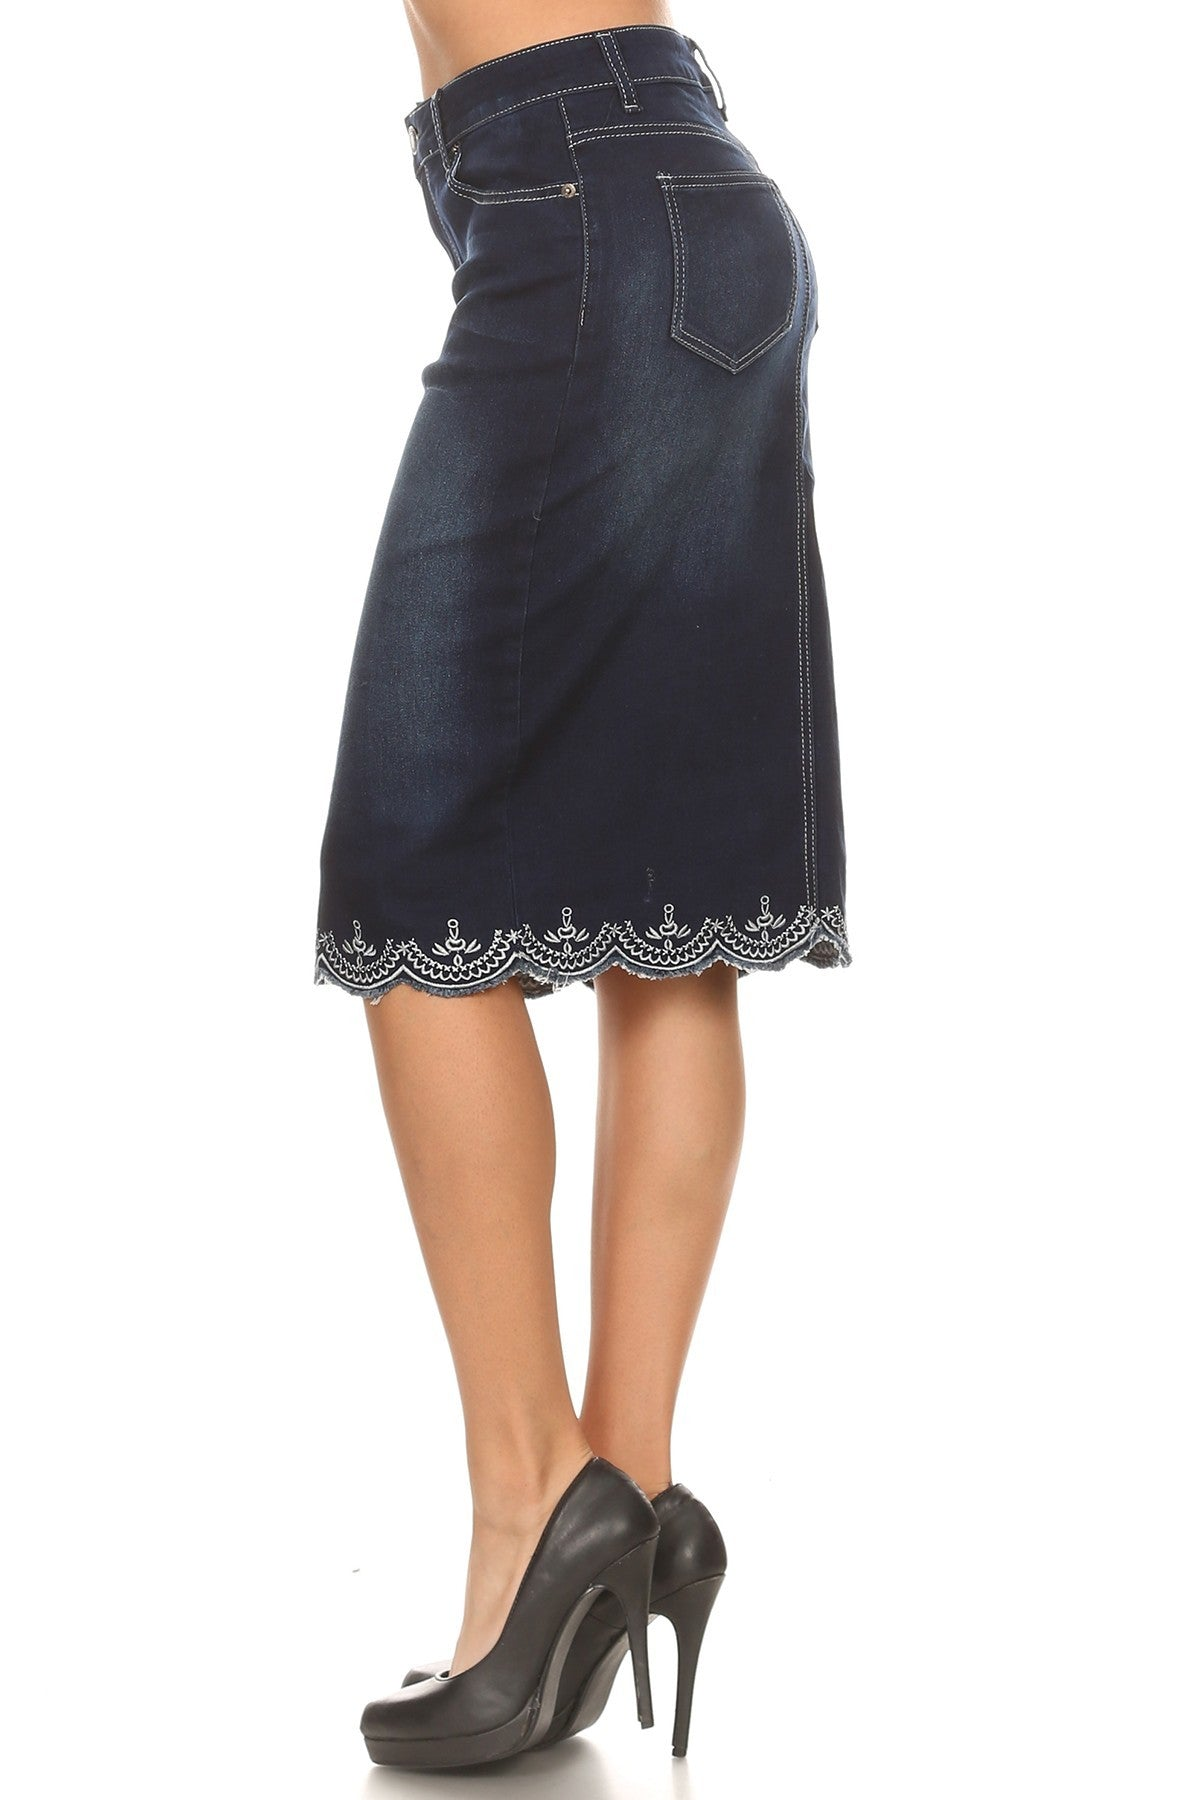 Denim Skirt ~ Lacy